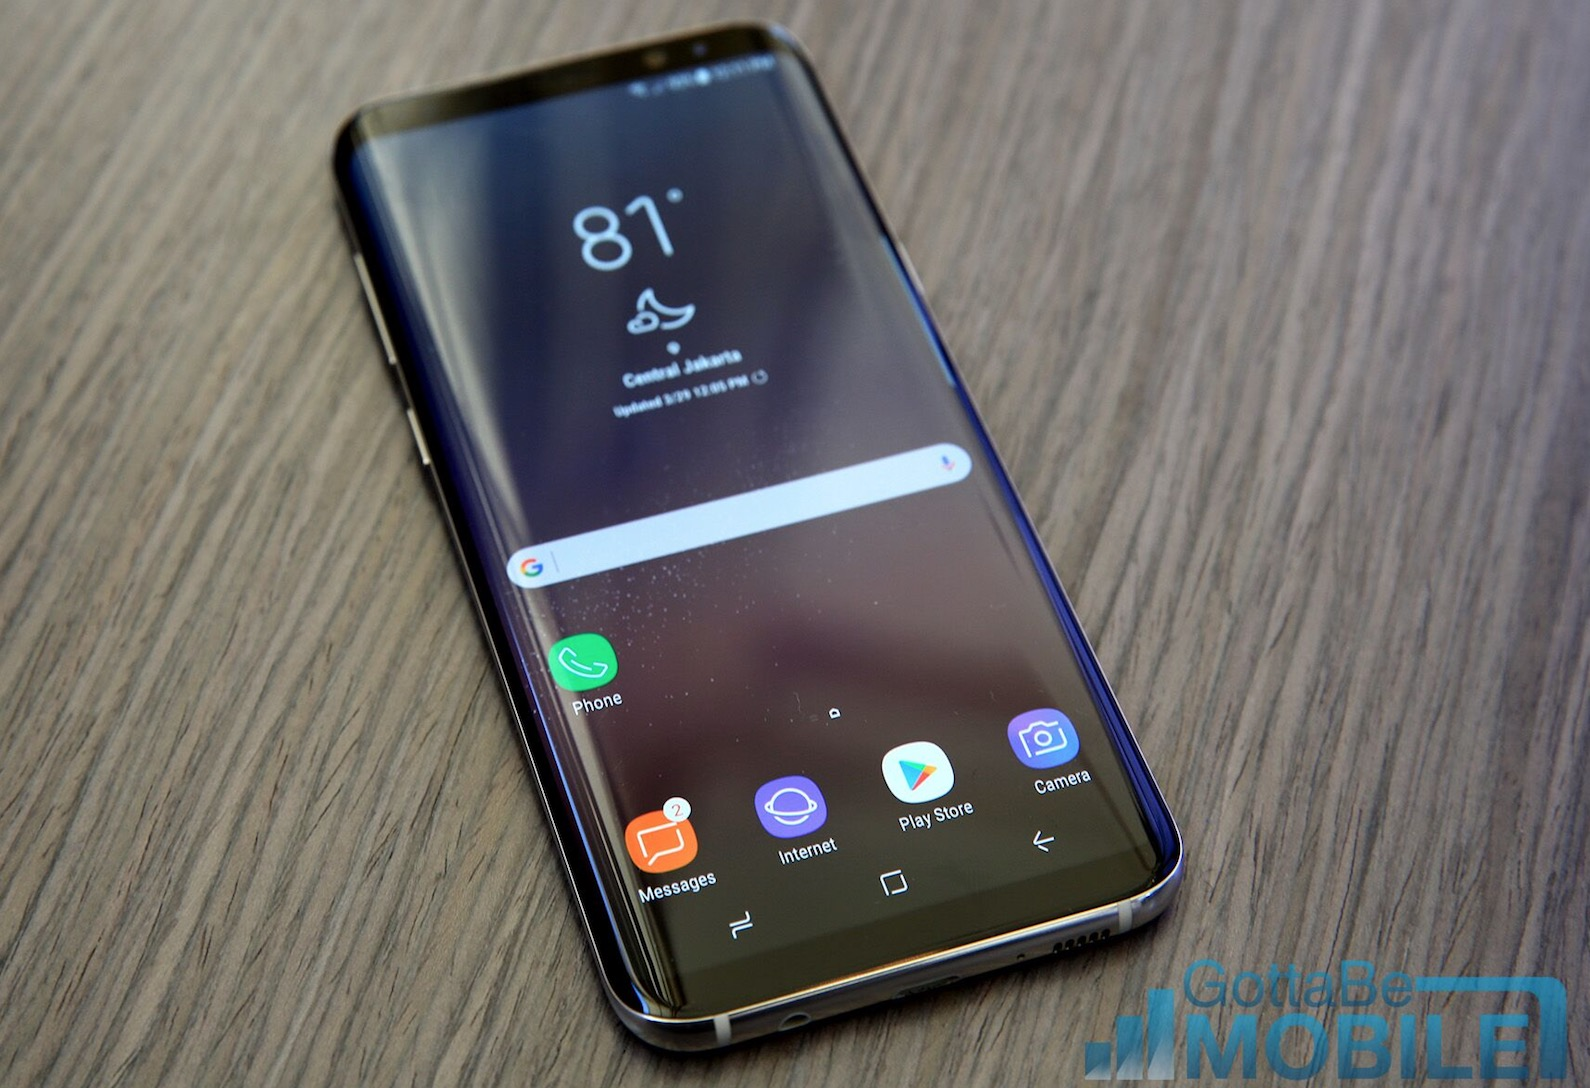 Samsung Galaxy S8 To Receive Update To Fix Red-Tinted Screens